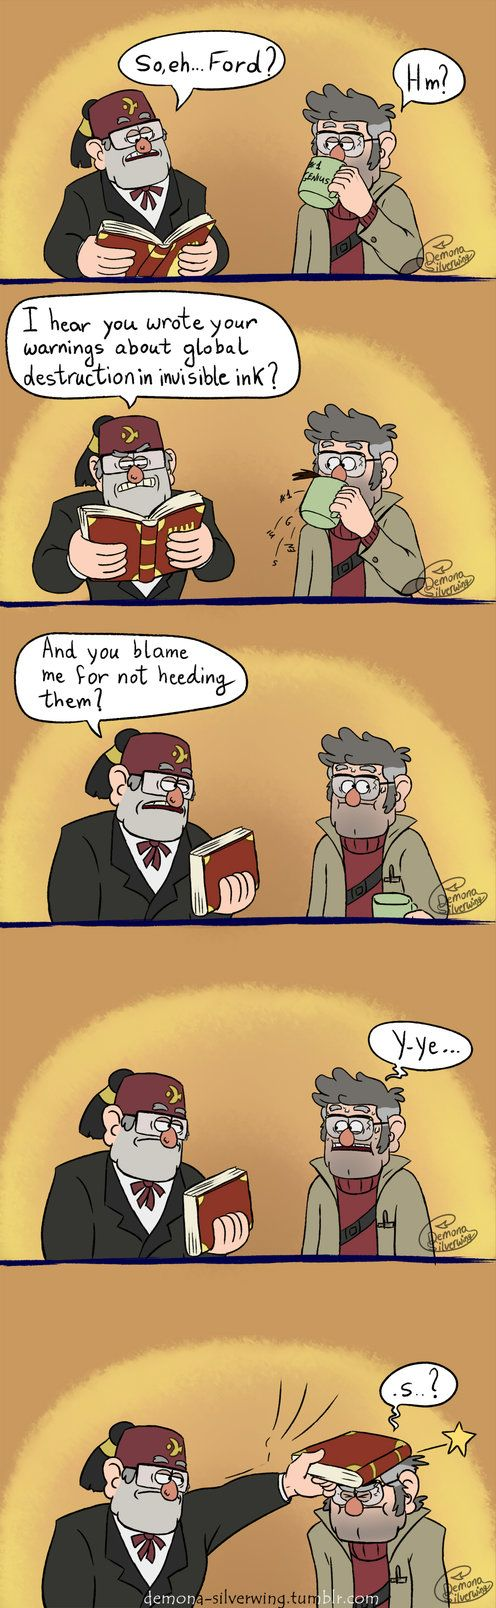 Stupid Genius by Demona-Silverwing on DeviantArt